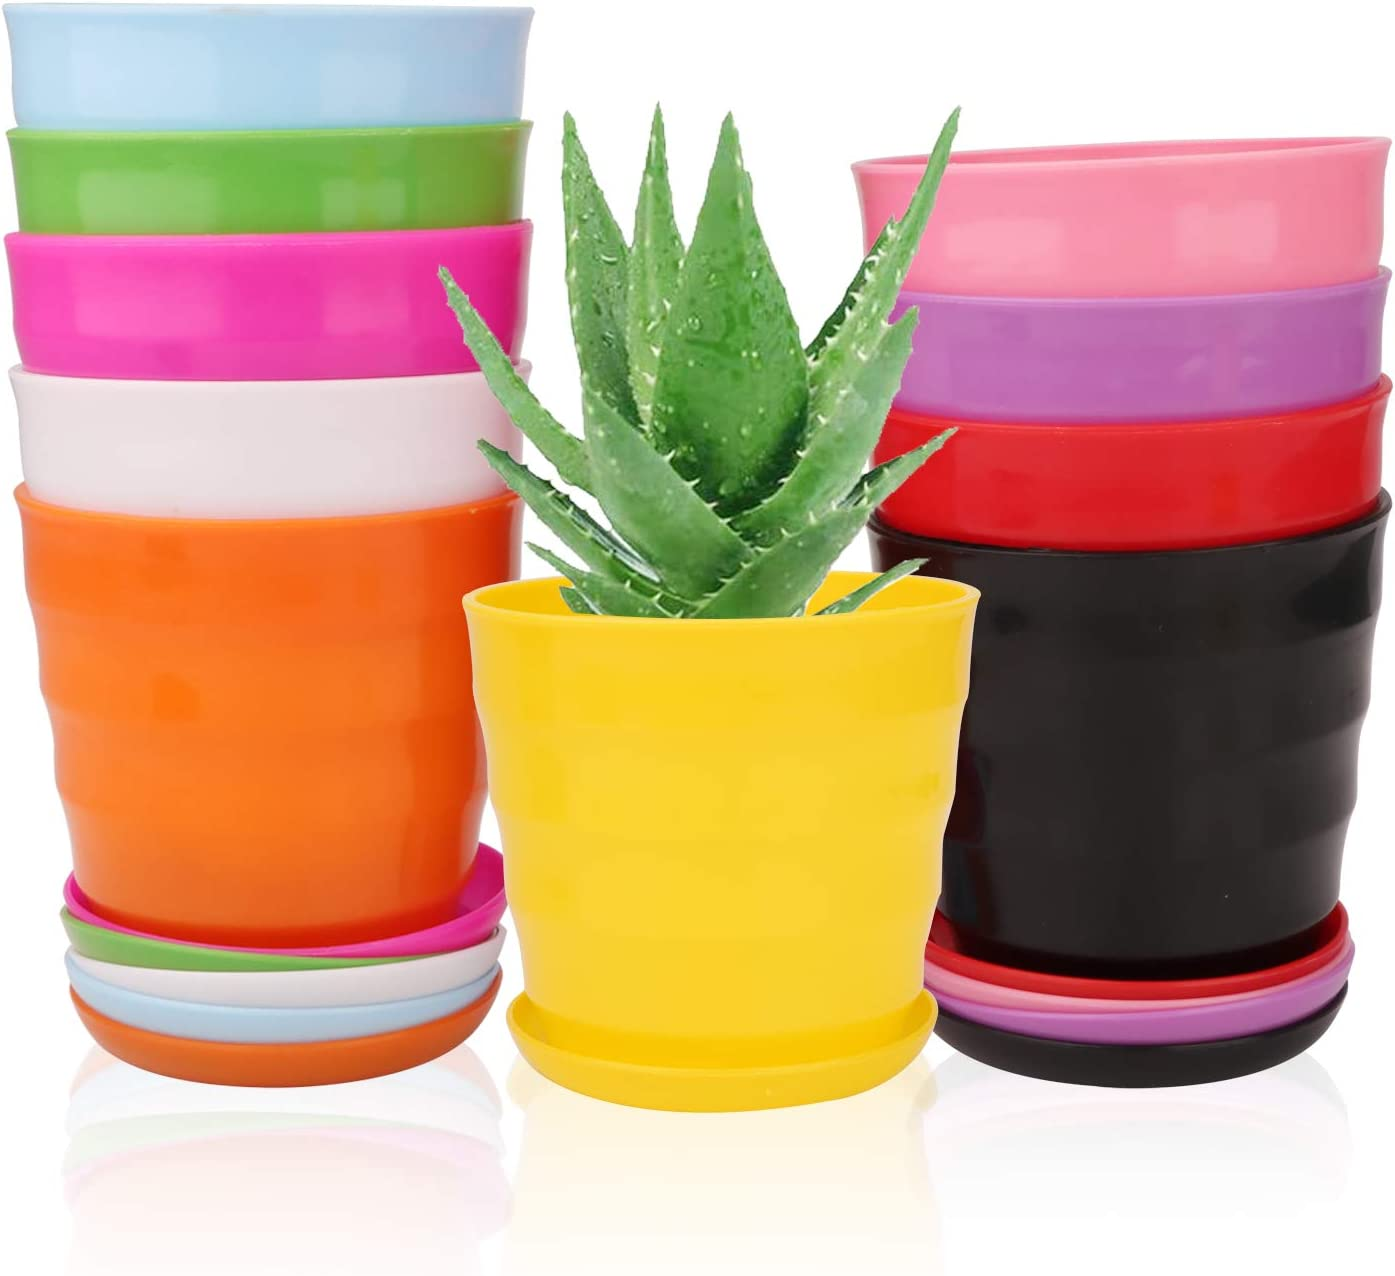 5 Inches Plastic Plant Pots with Drainage Holes, Ufrount Gardening Containers, Flower Pots, Perfect for Garden/Yard/Kitchen/Flower/Succulents - Set of 10 (10 Colors, Thread Shape)